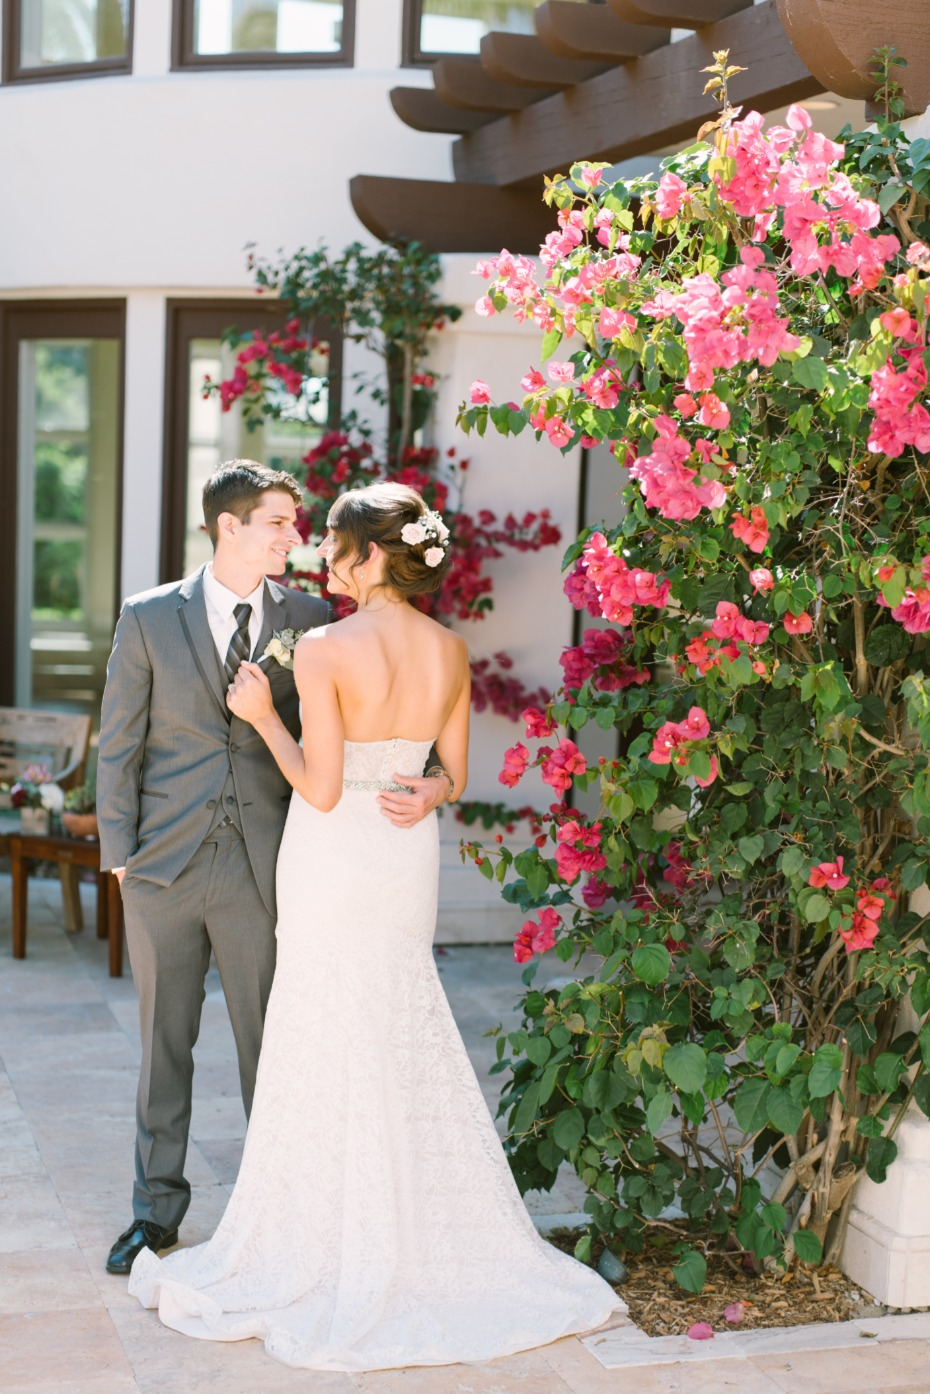 Elegant laid-back wedding